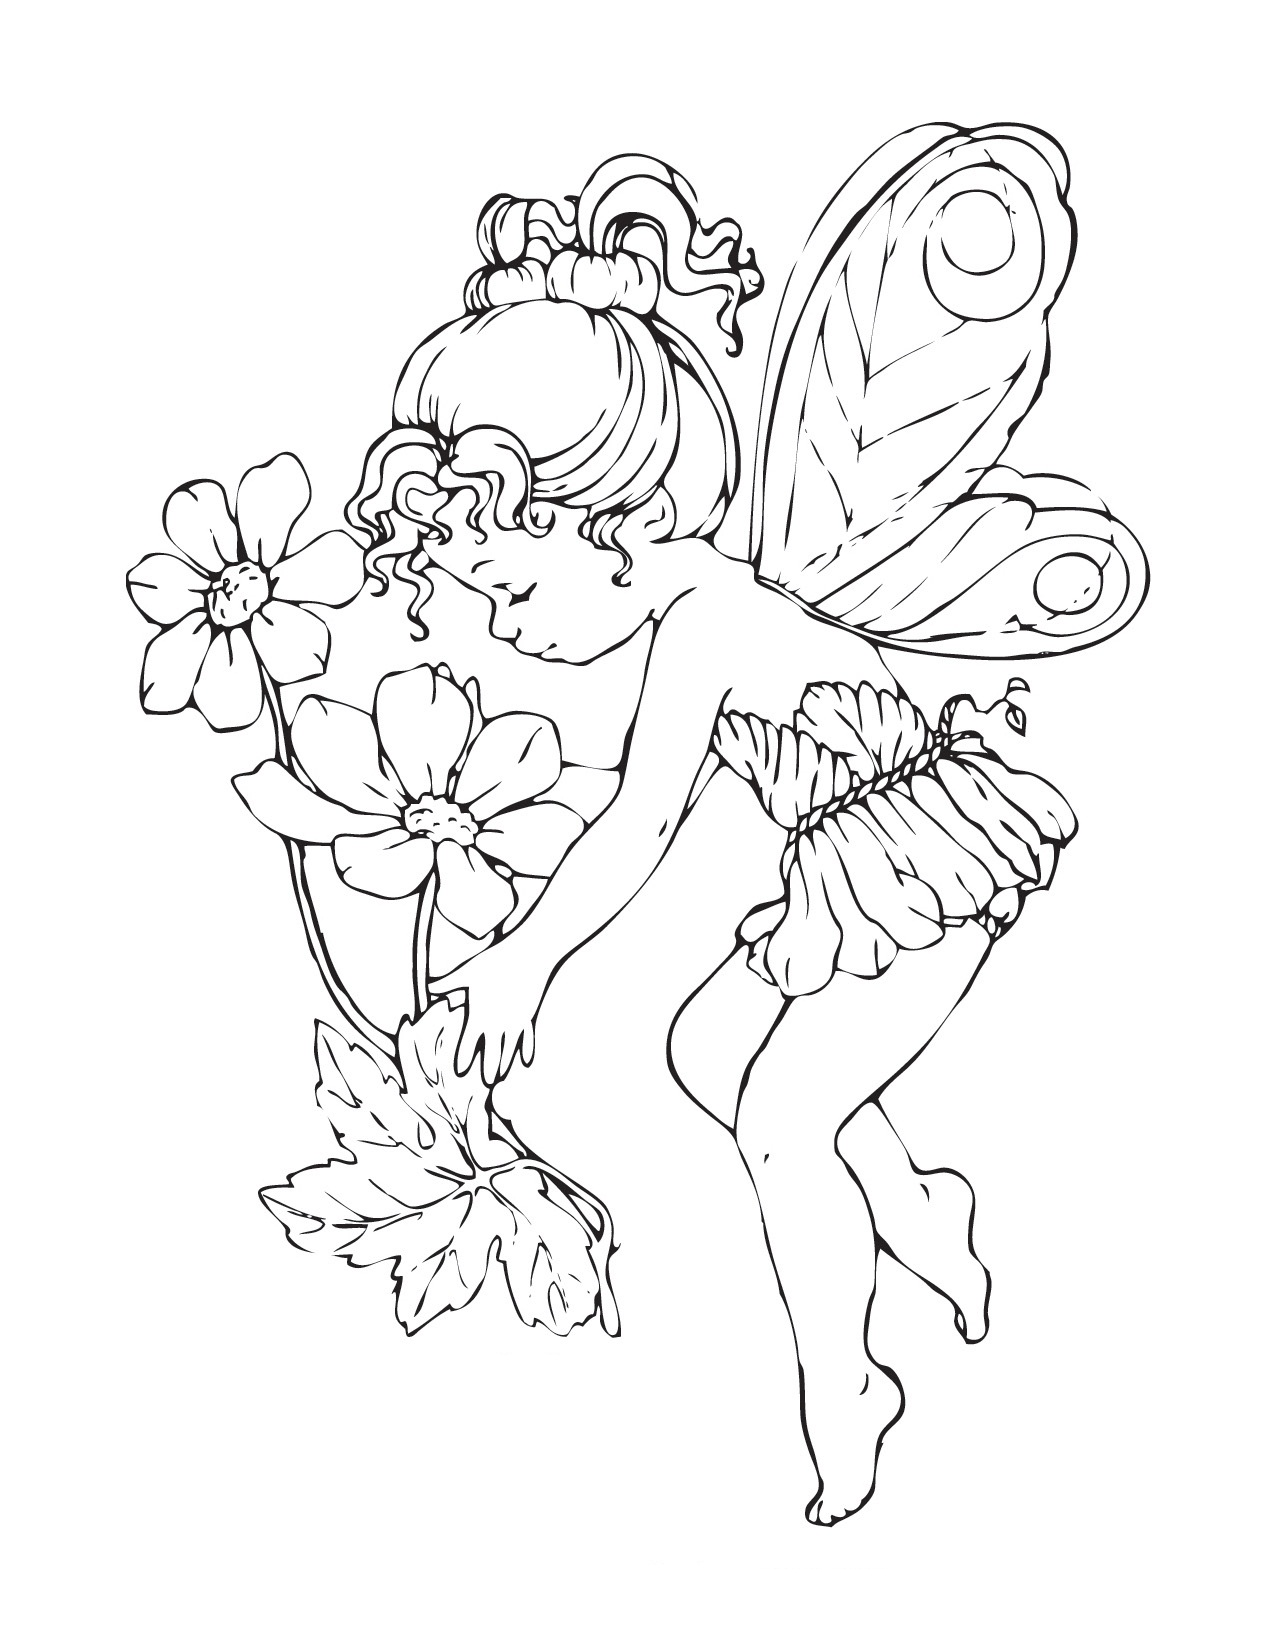 fairy coloring pages for kids Free Printable Fairy Coloring Pages For Kids fairy coloring pages for kids